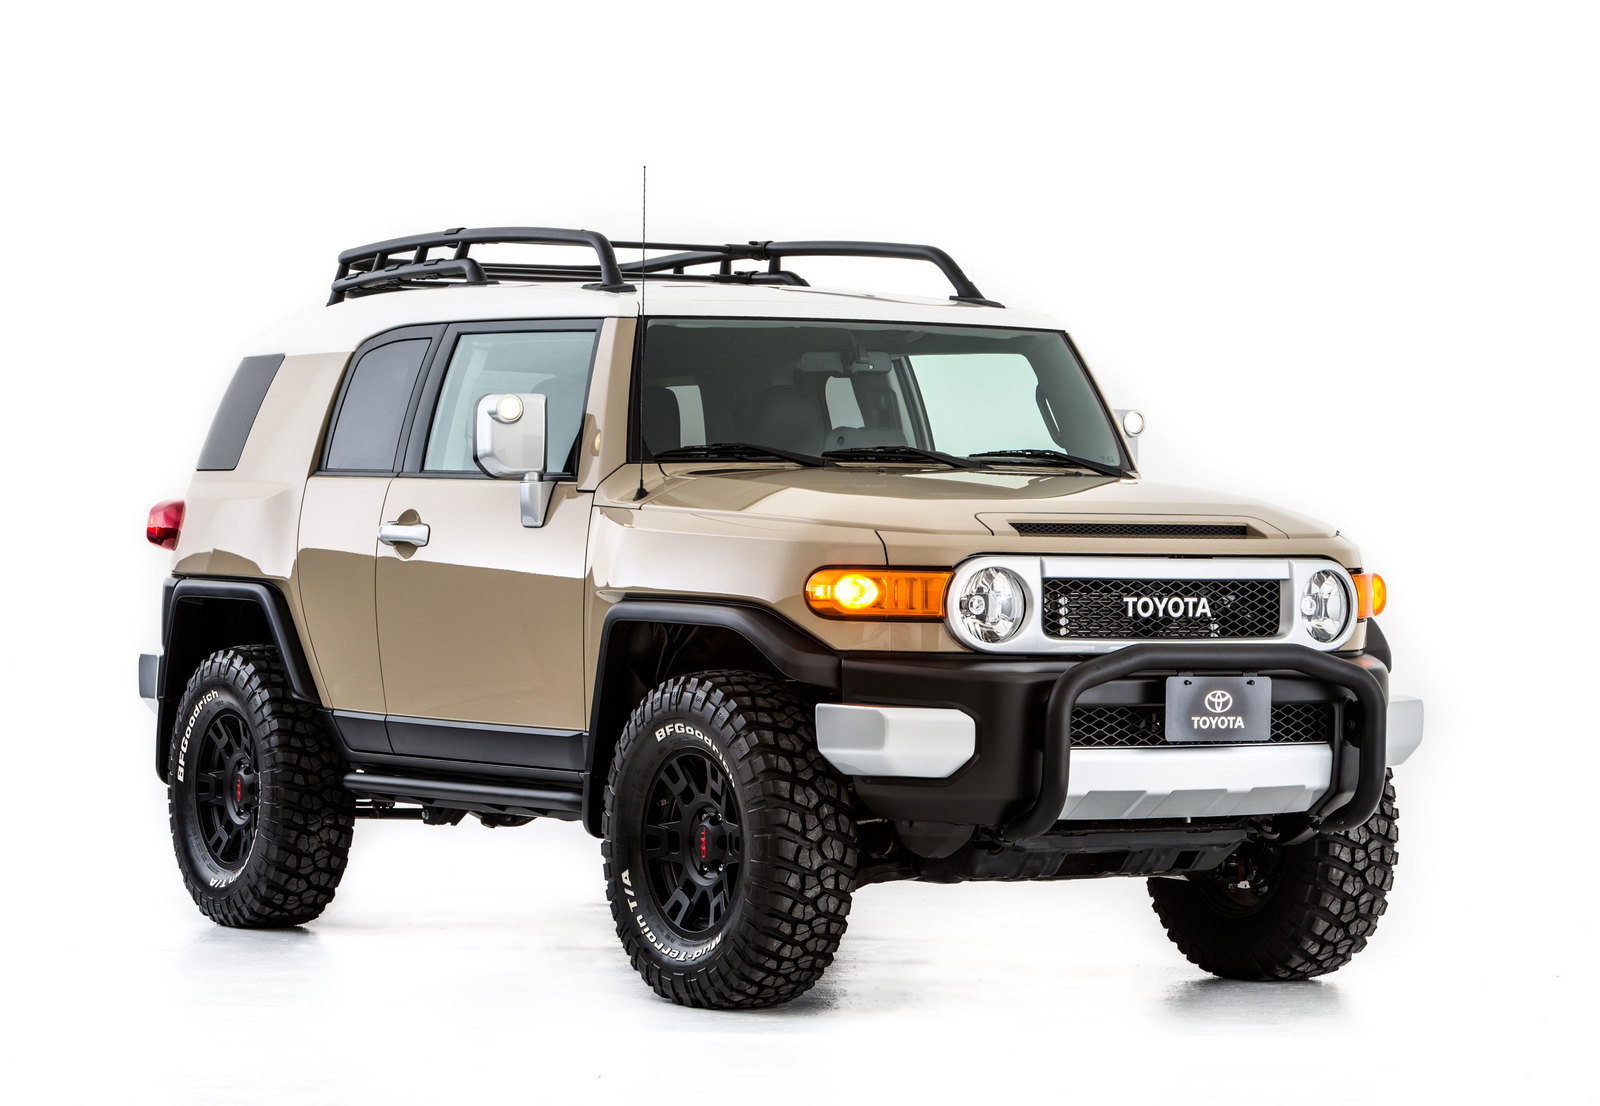 2013 toyota fj s cruiser concept by trd review top speed. Black Bedroom Furniture Sets. Home Design Ideas